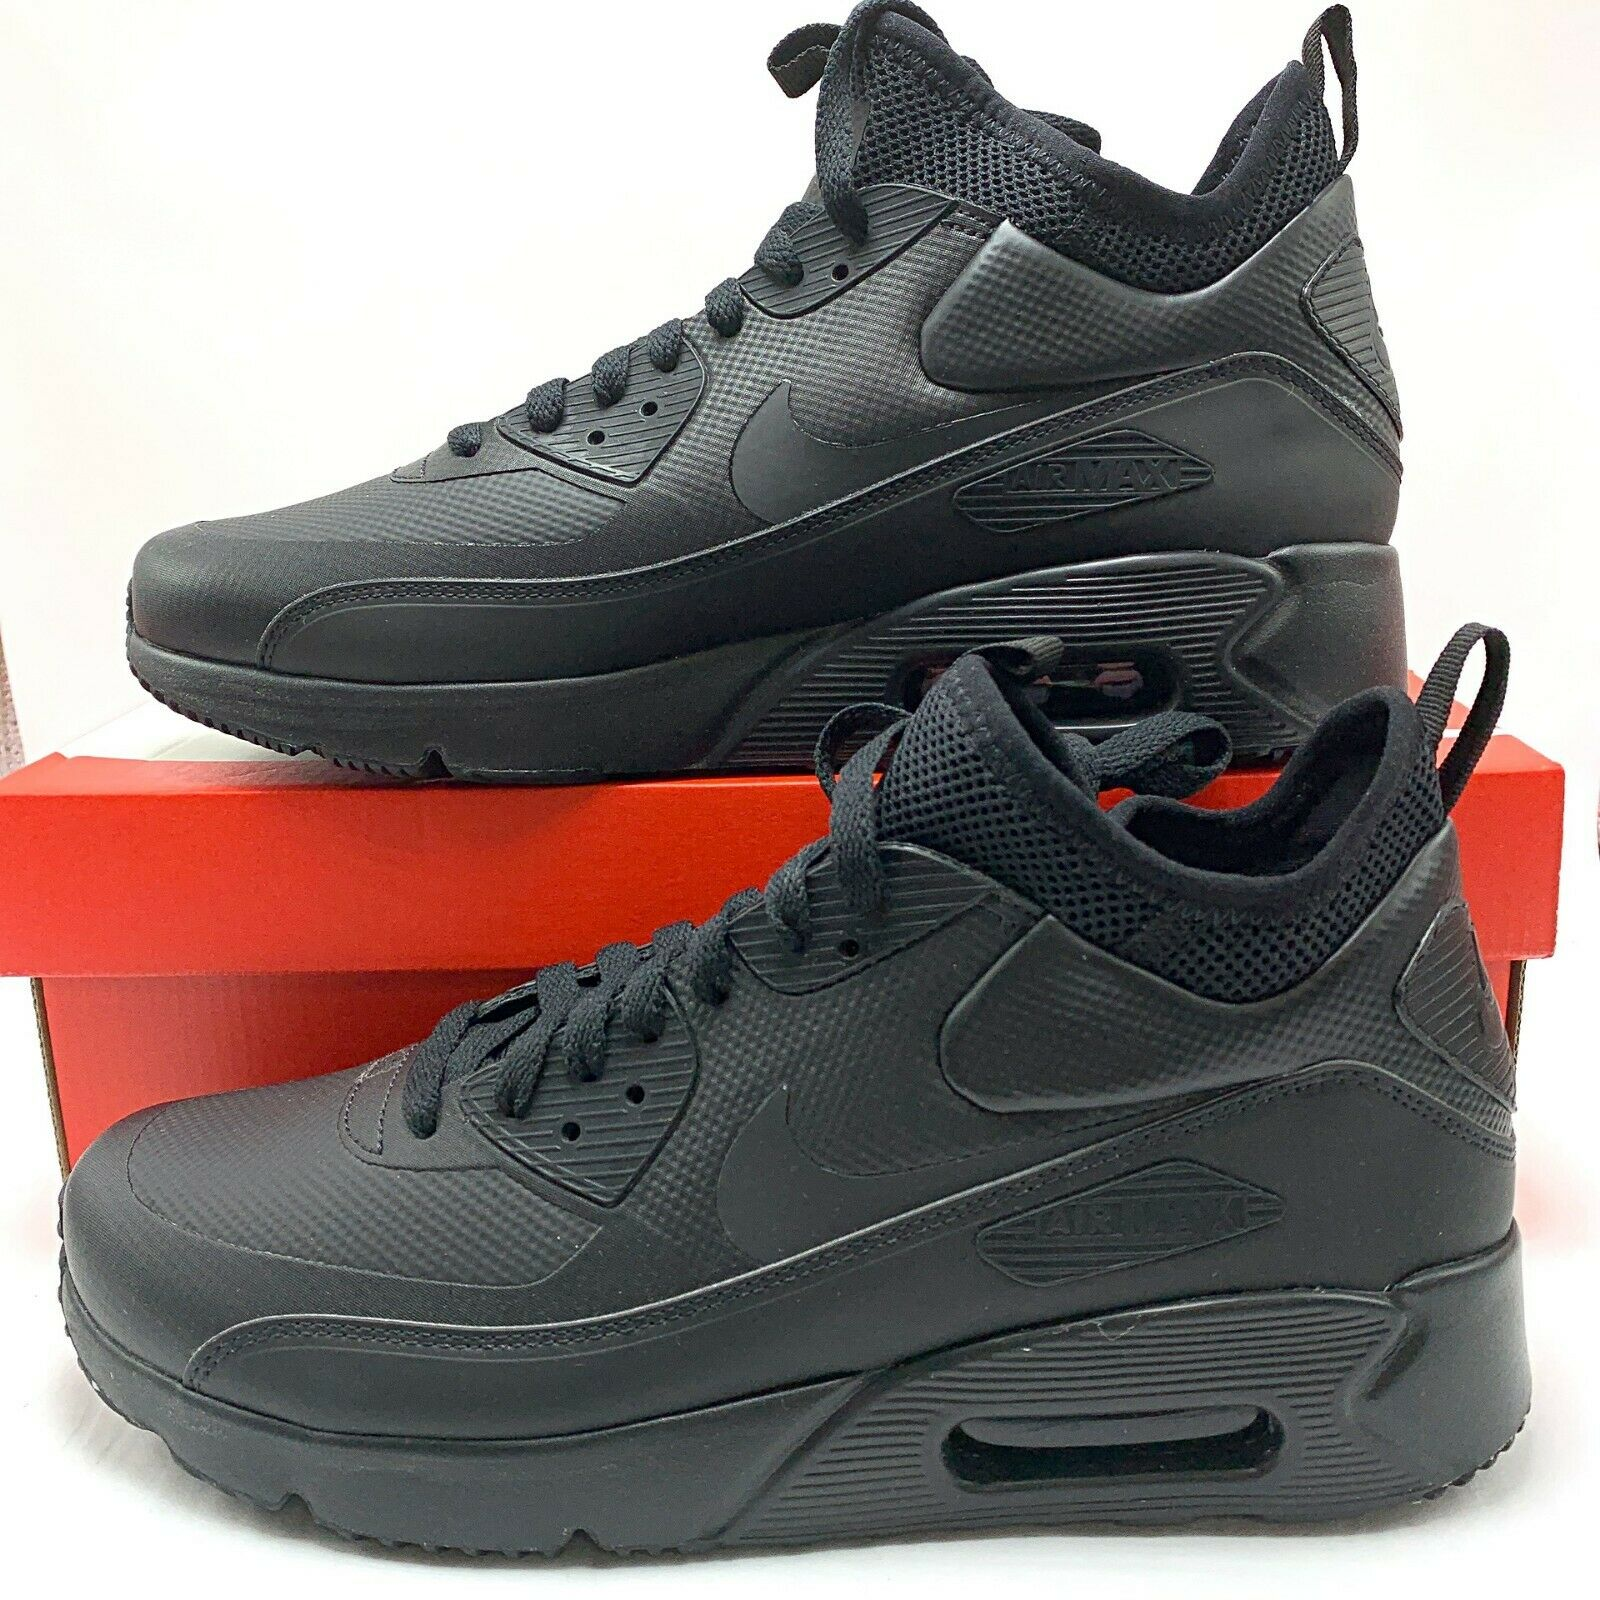 Nike Air Max 90 Ultra Mid Winter Blackanthracite 924458 004 Size 9.5 US